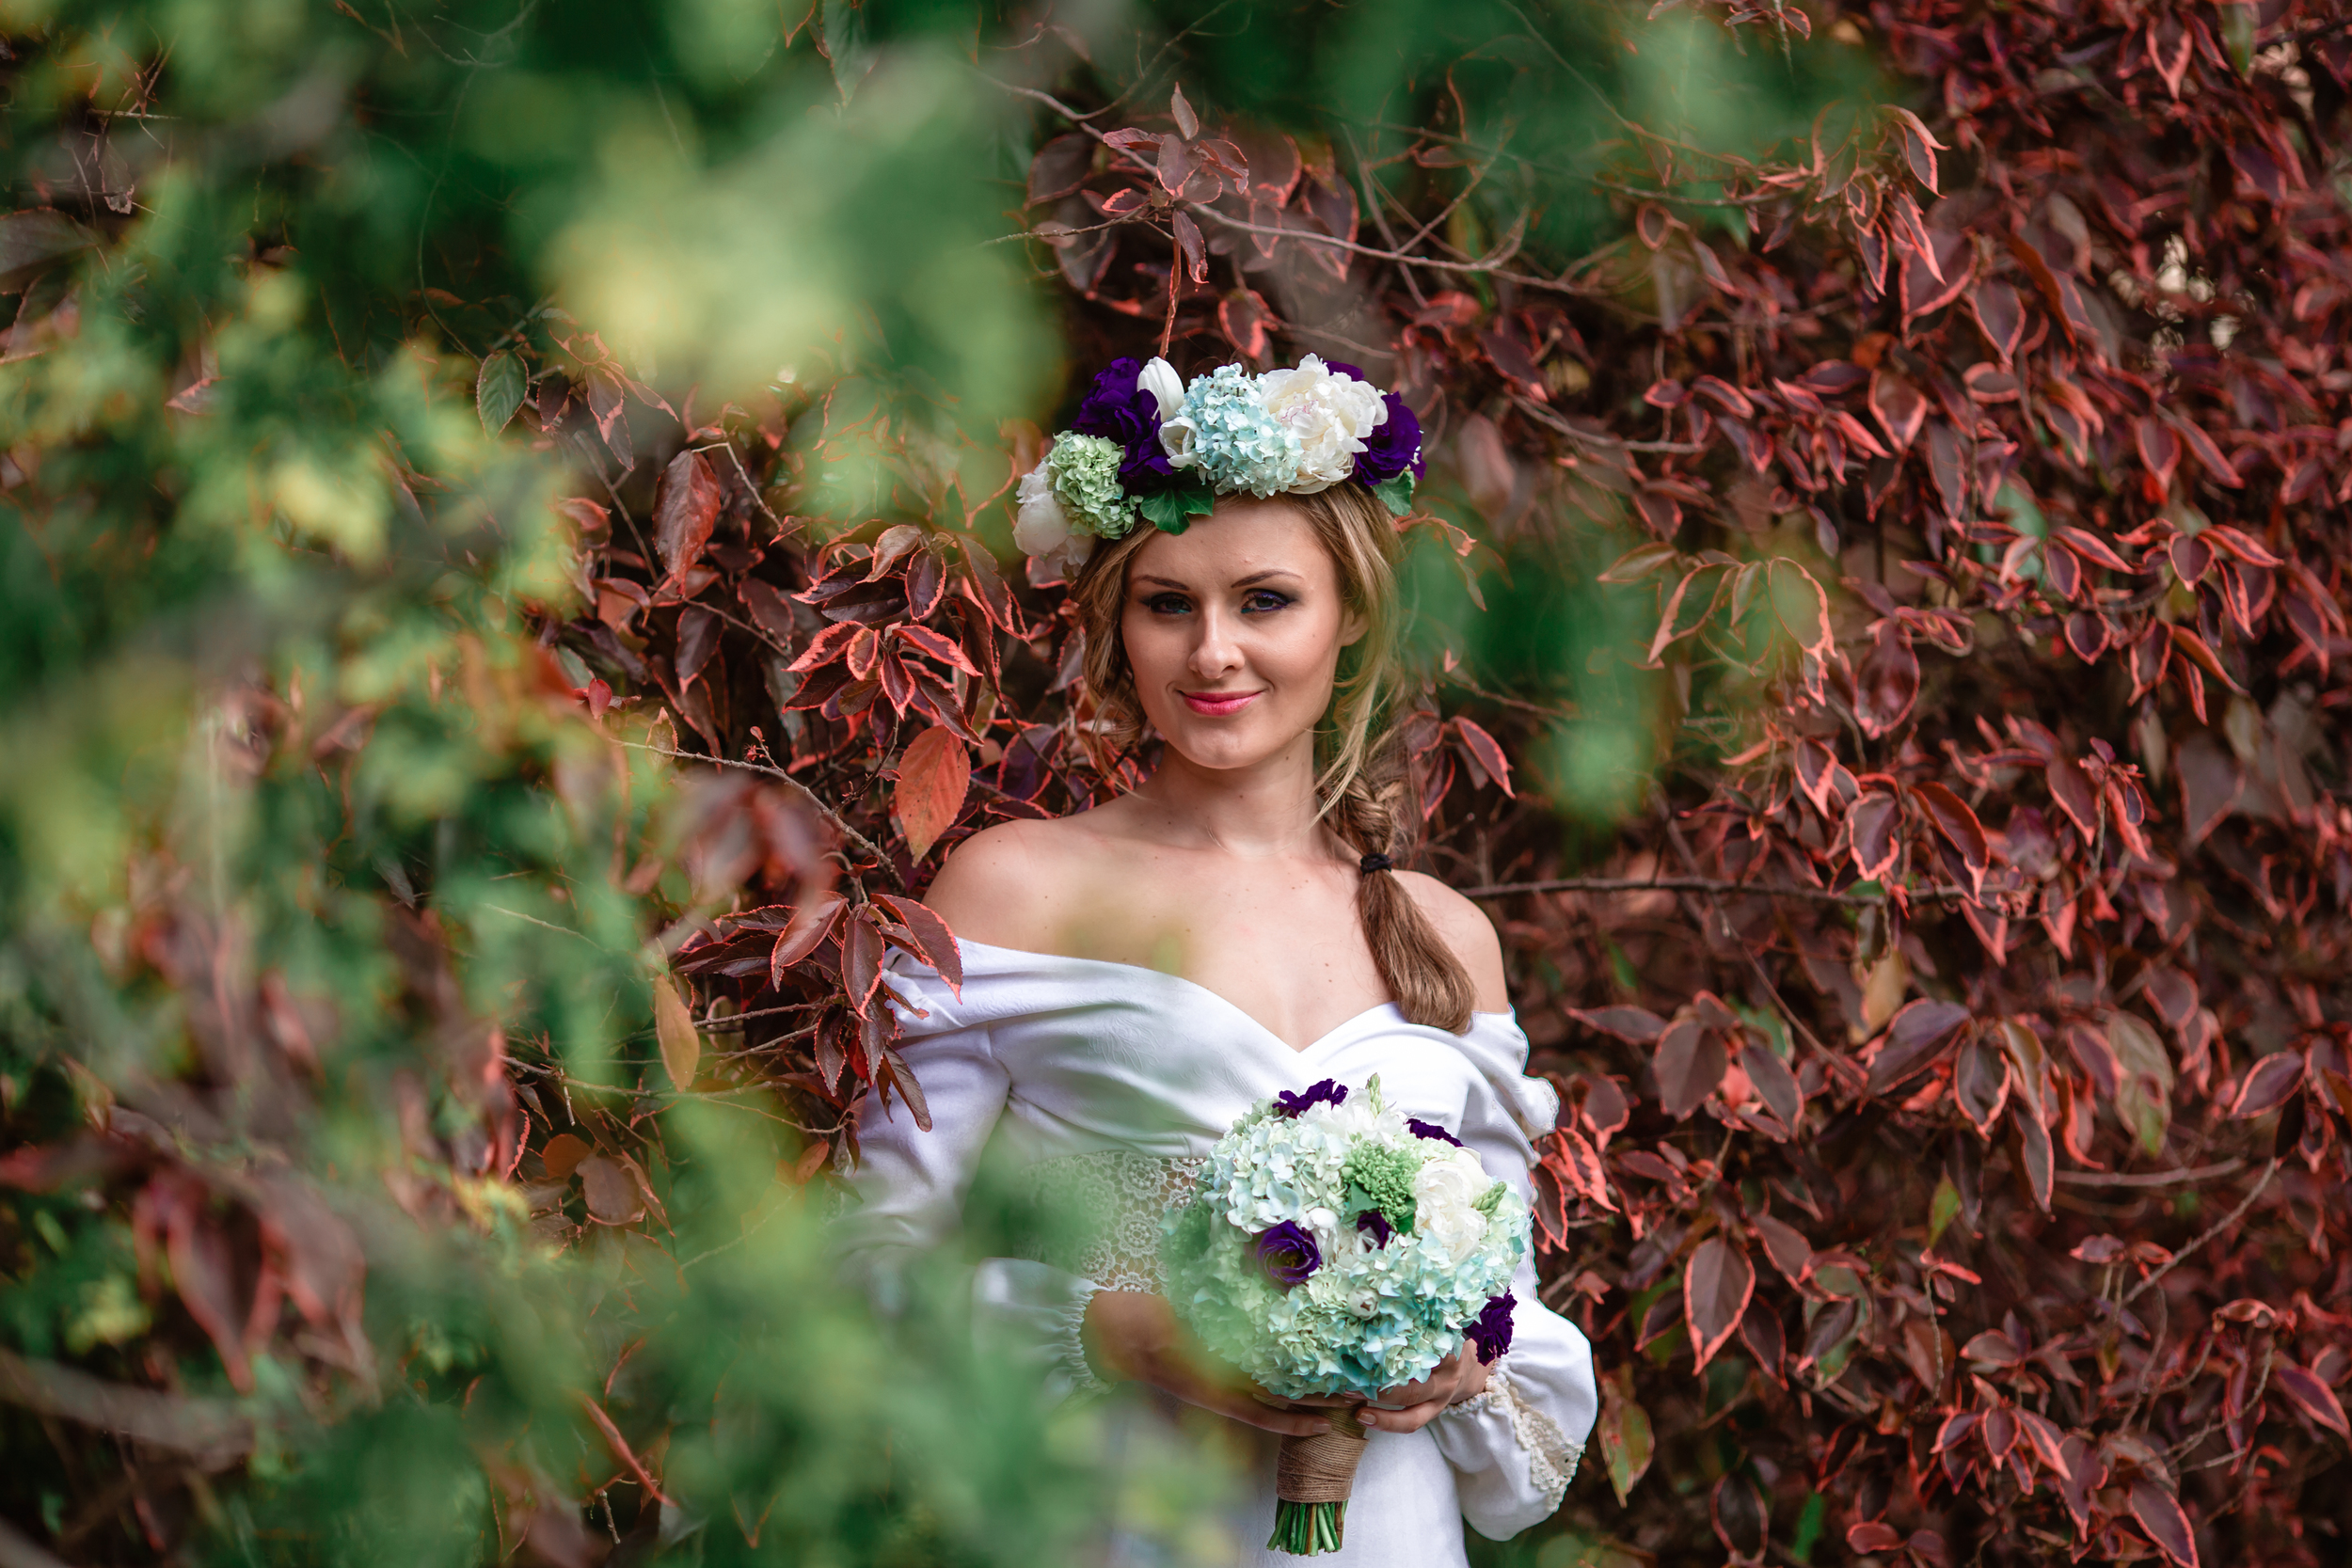 Garden Wedding - Floral Crown and bridal bouquet 12.jpg